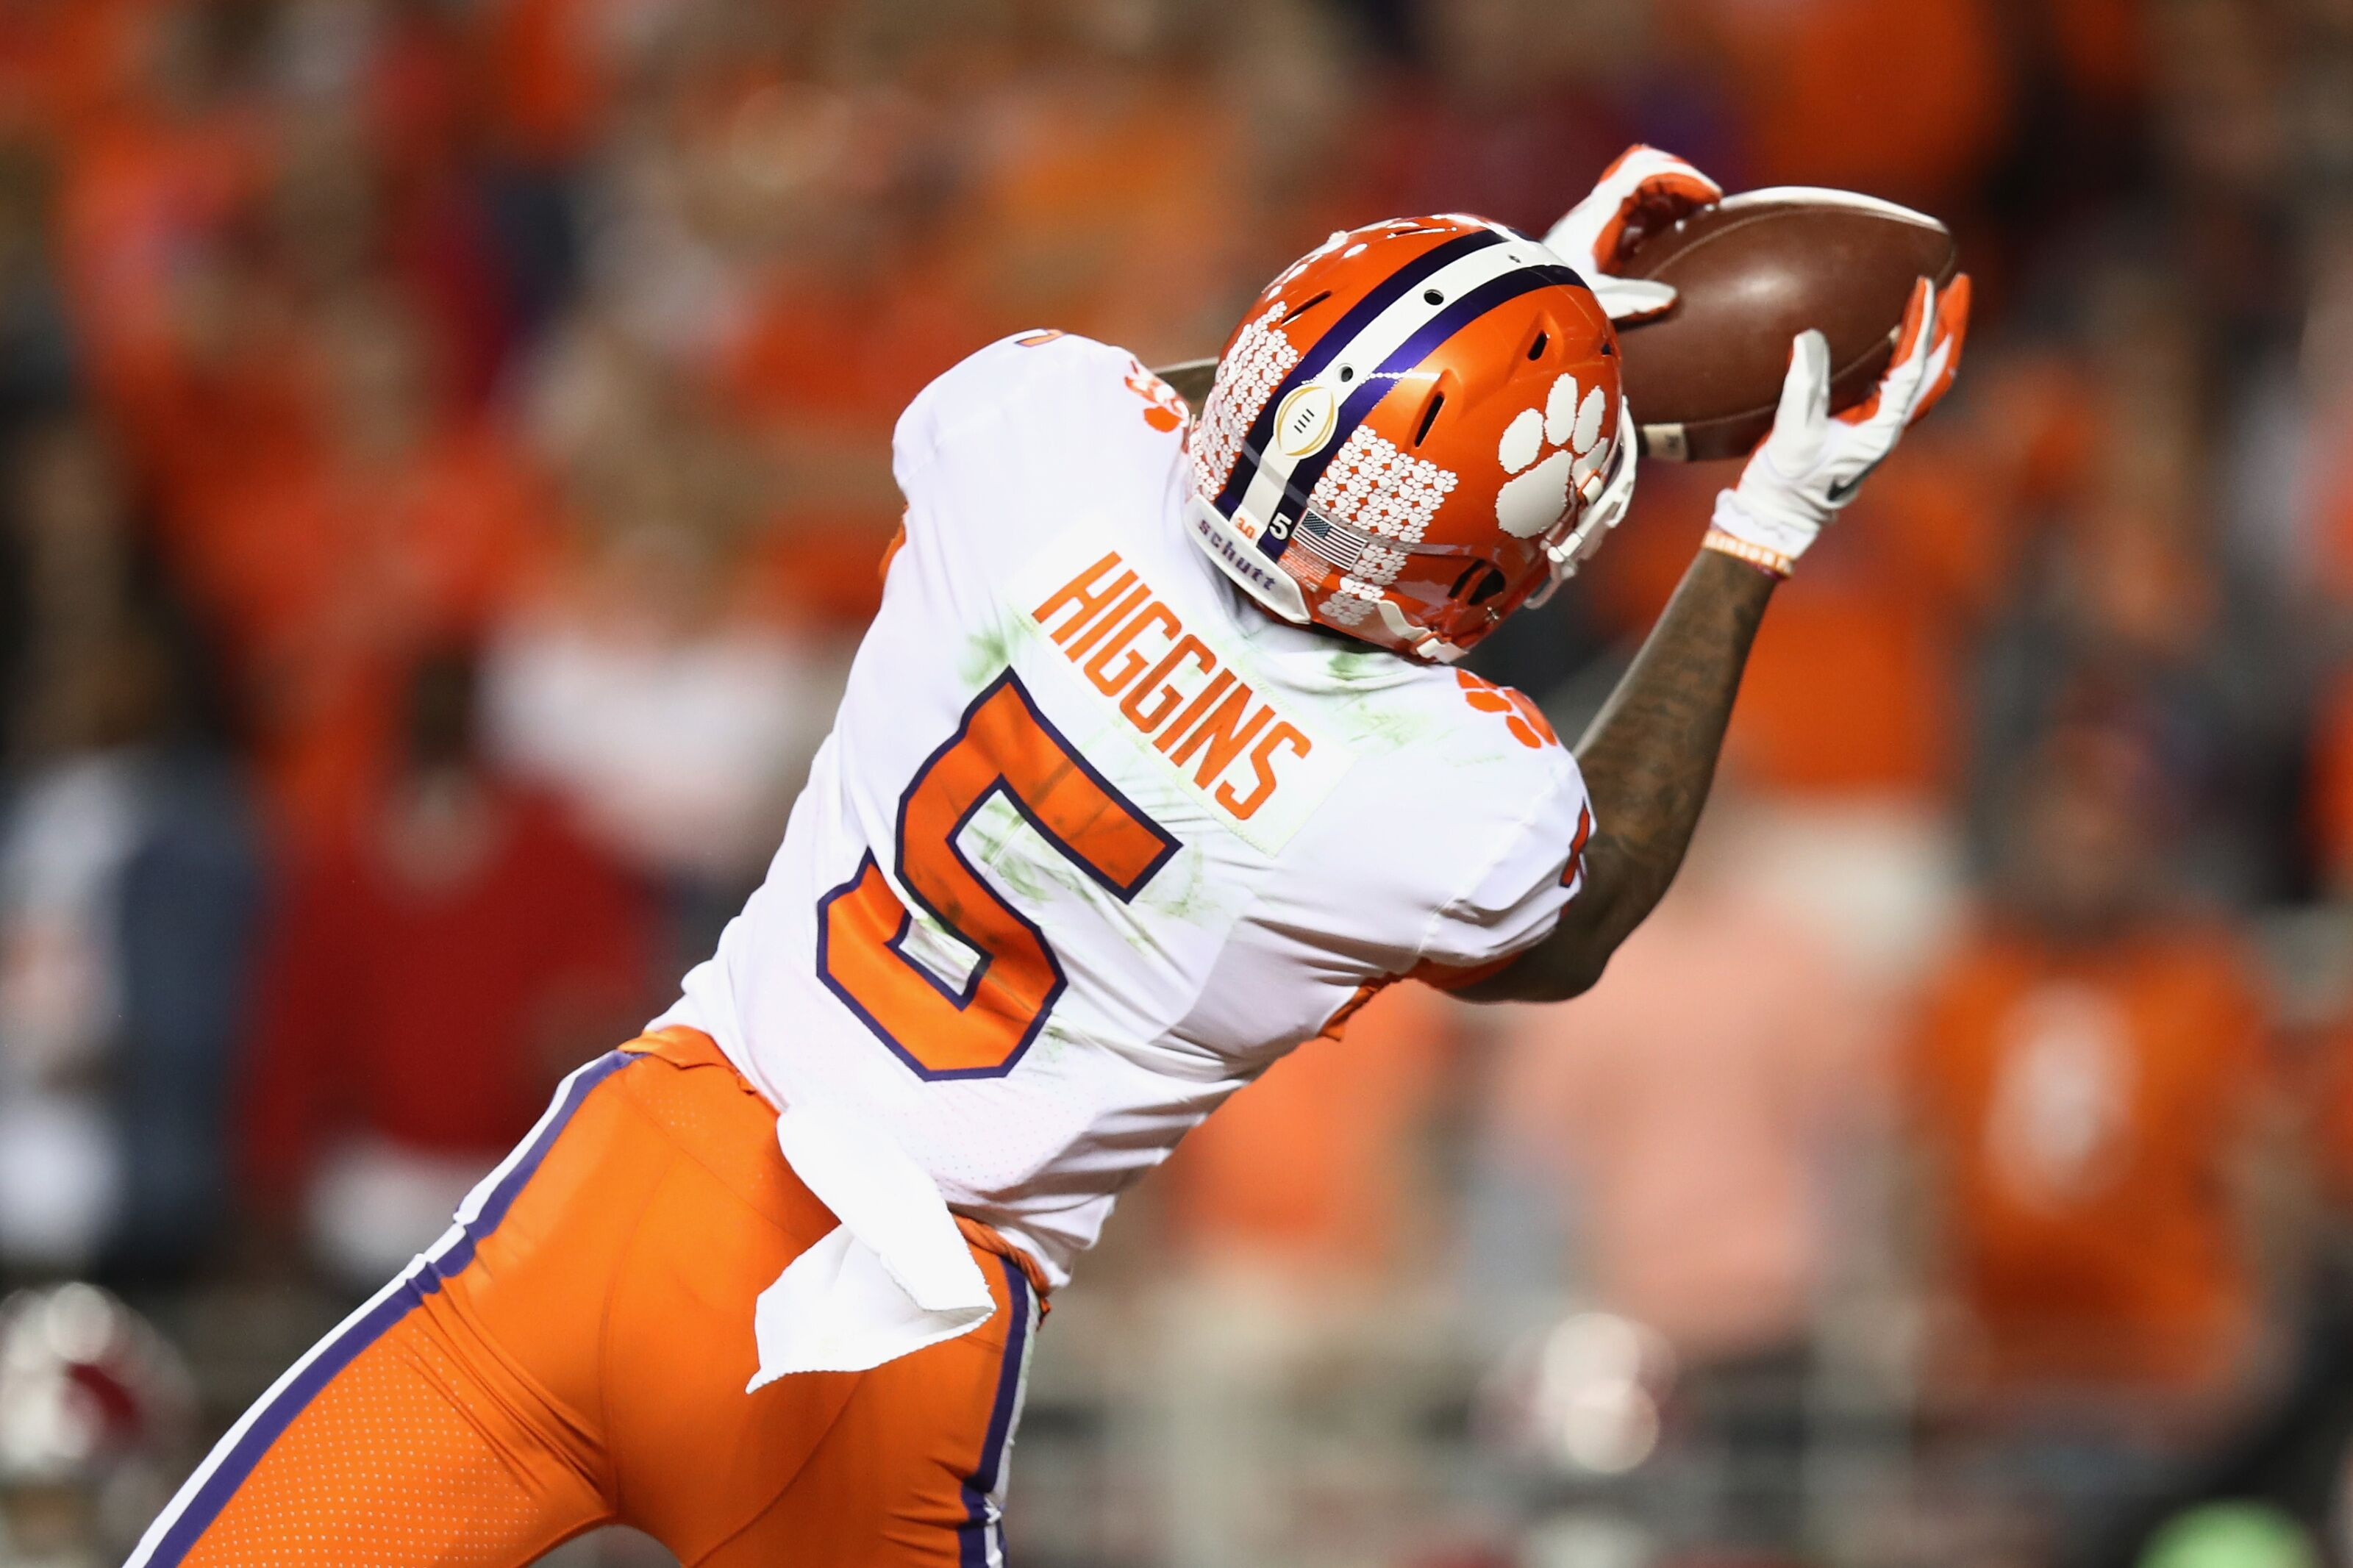 Scouting the 2020 NFL Draft: Tee Higgins, WR, Clemson